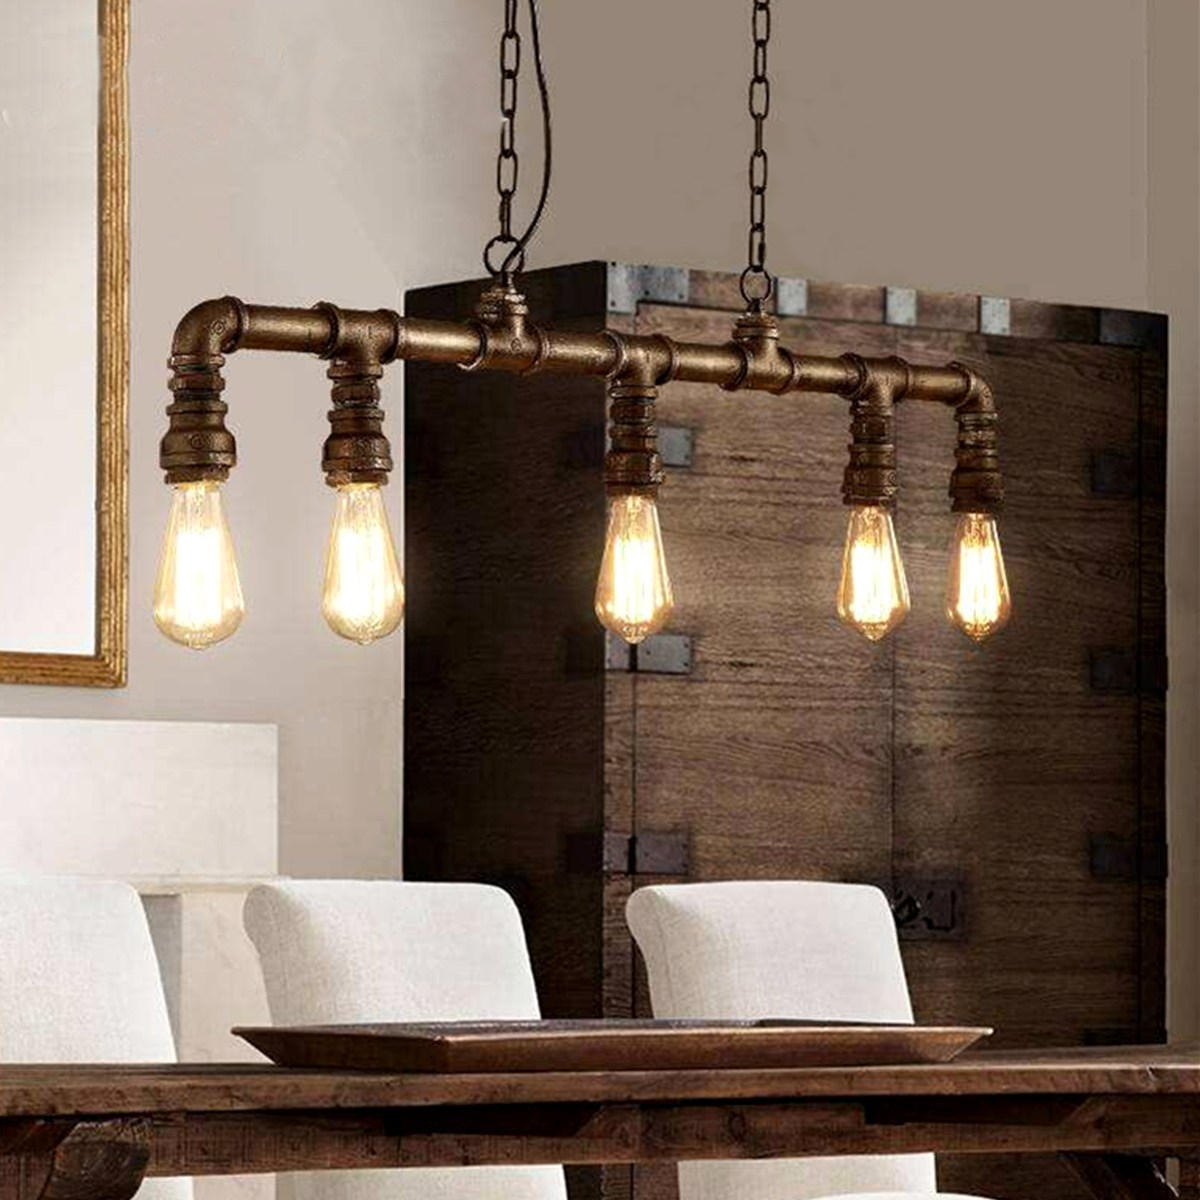 Vintage 110-220V Retro Bar Cafe Industrial Water Pipe Pendant Lamps Light DIY Adjustable Hanging Coffee Shop Decorative Light edison industrial vintage retro simple type flowers crystal glass droplight cafe bar club hall coffee shop bedroom bedside